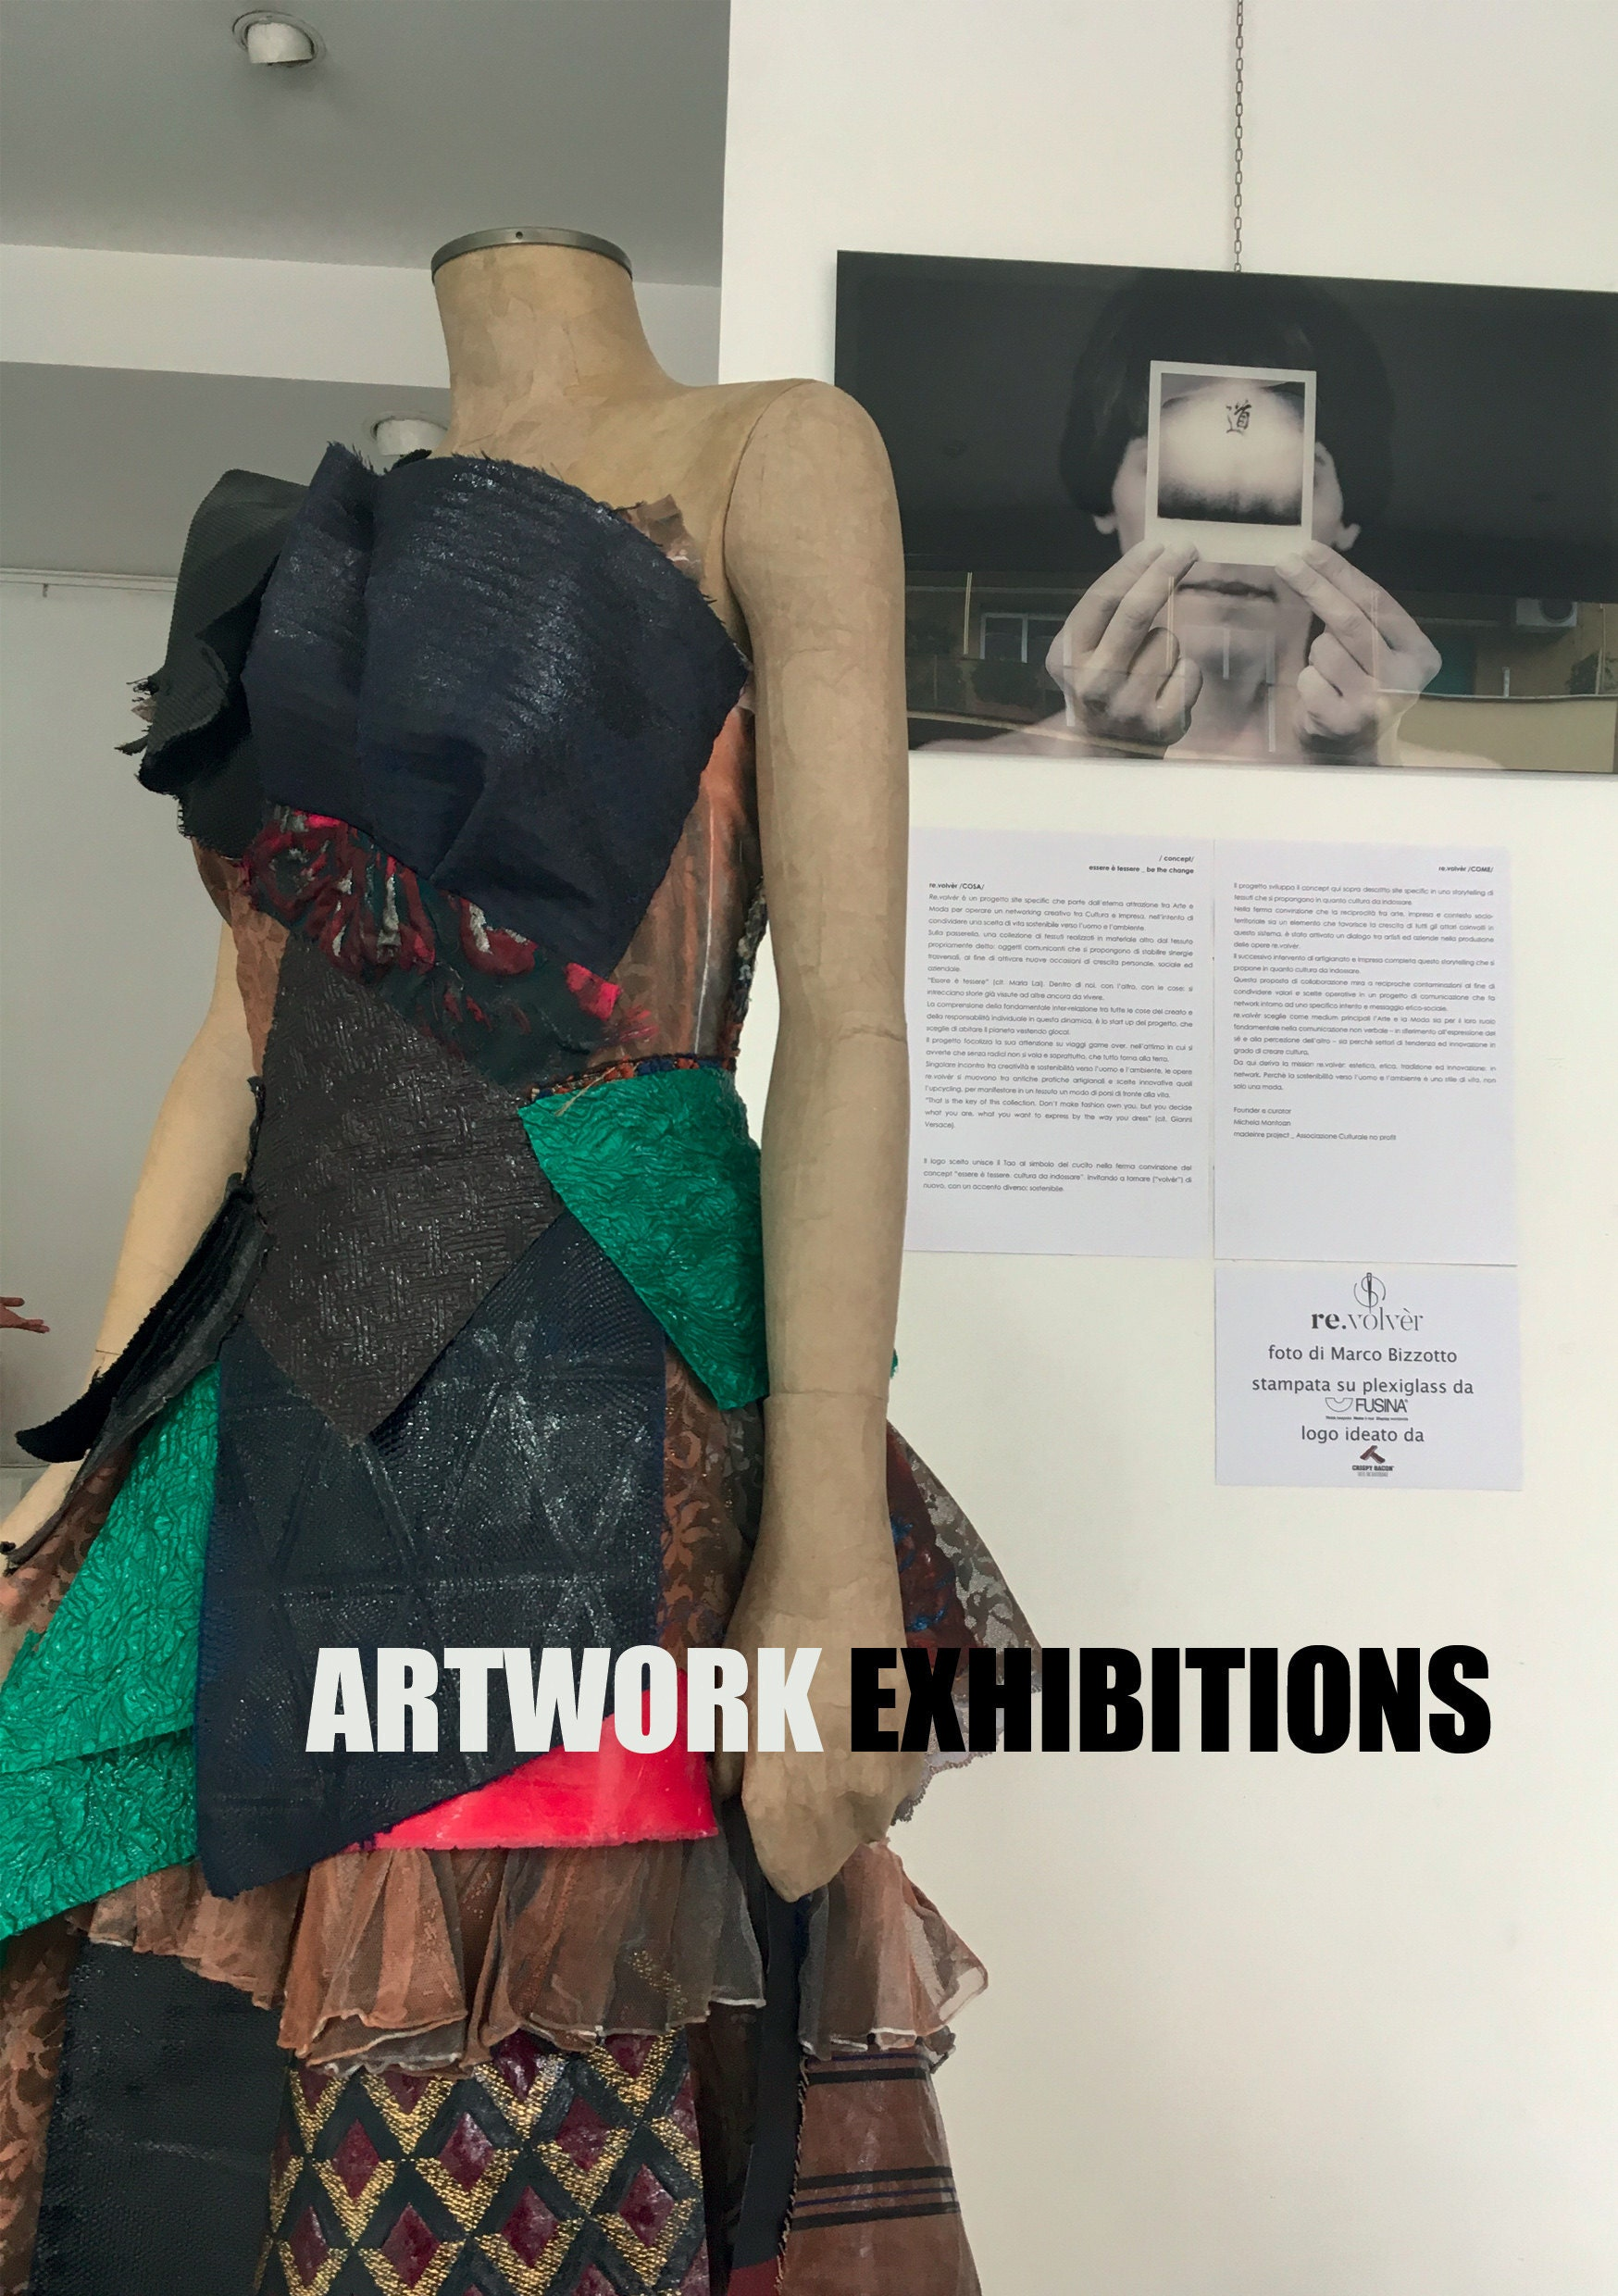 Lola Darling Artwork Exhibitions. The brand book